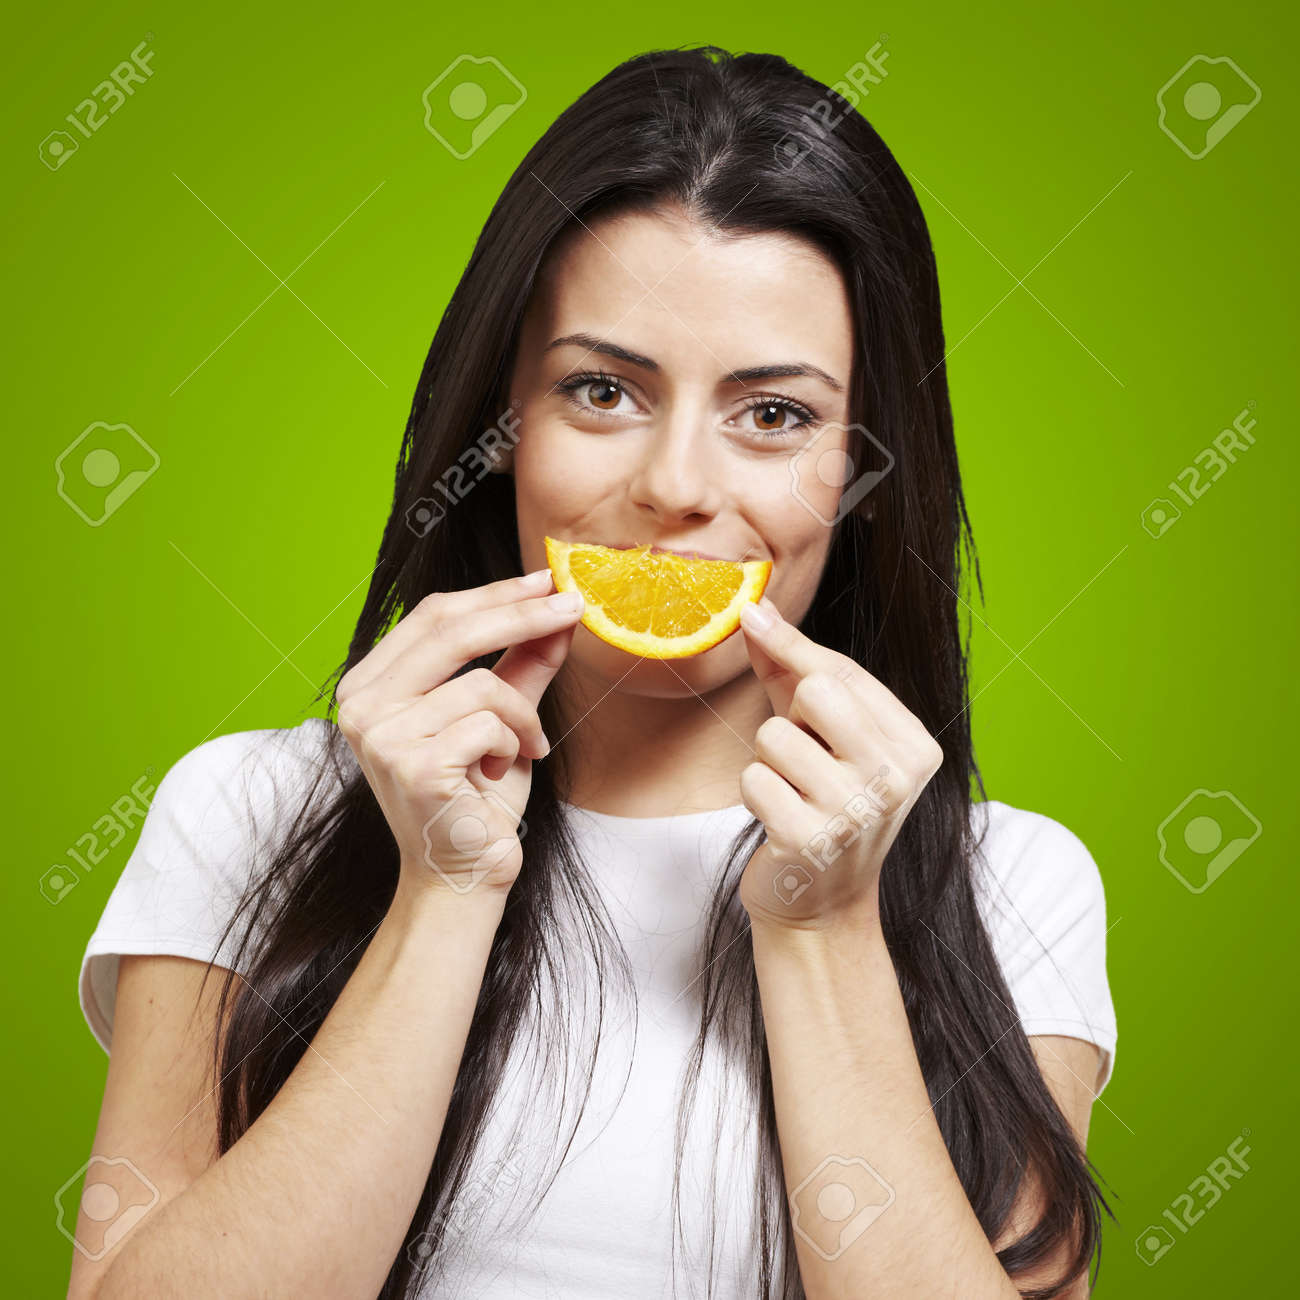 woman with an orange slice as a smile against a green background Stock Photo - 13280124